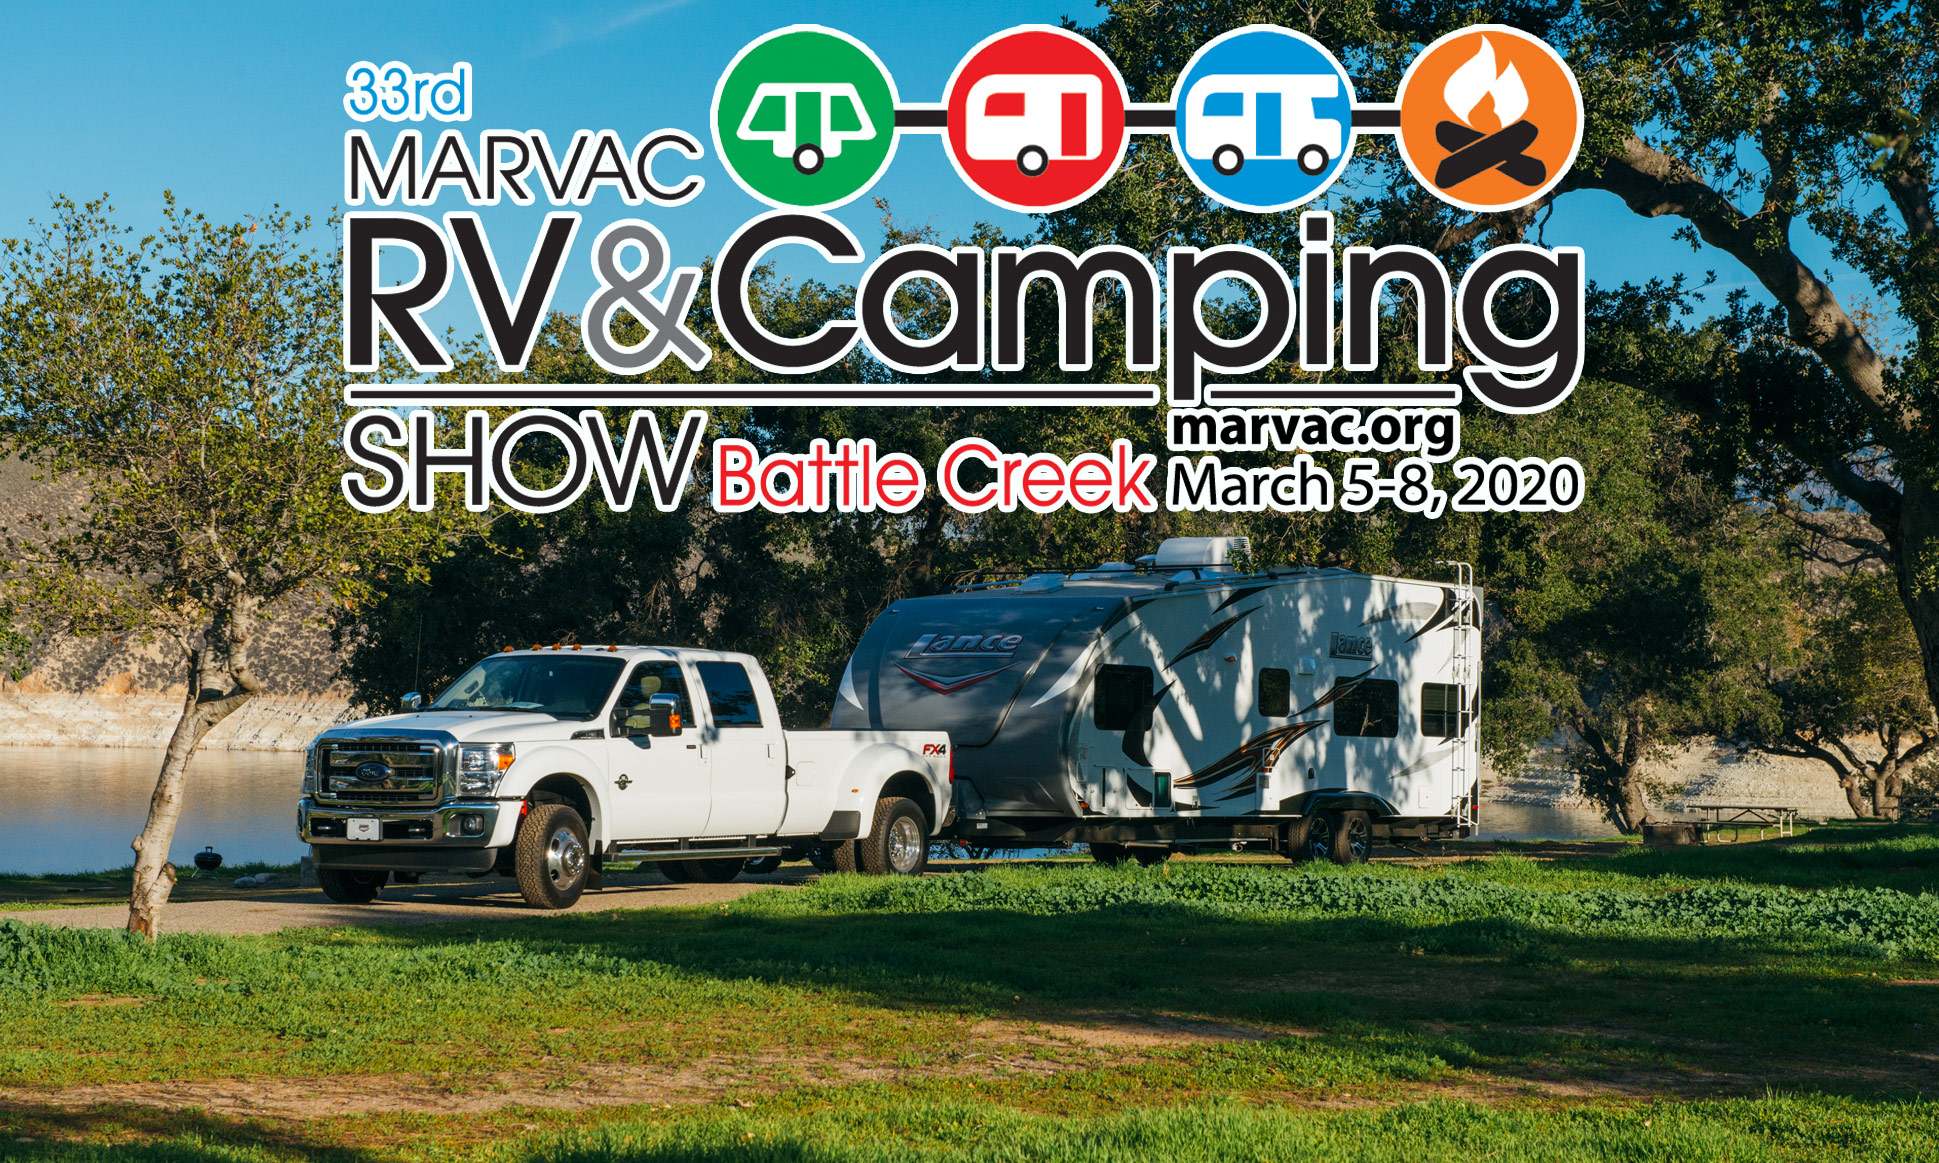 The 33rd Battle Creek RV & Camping Show - MARVAC